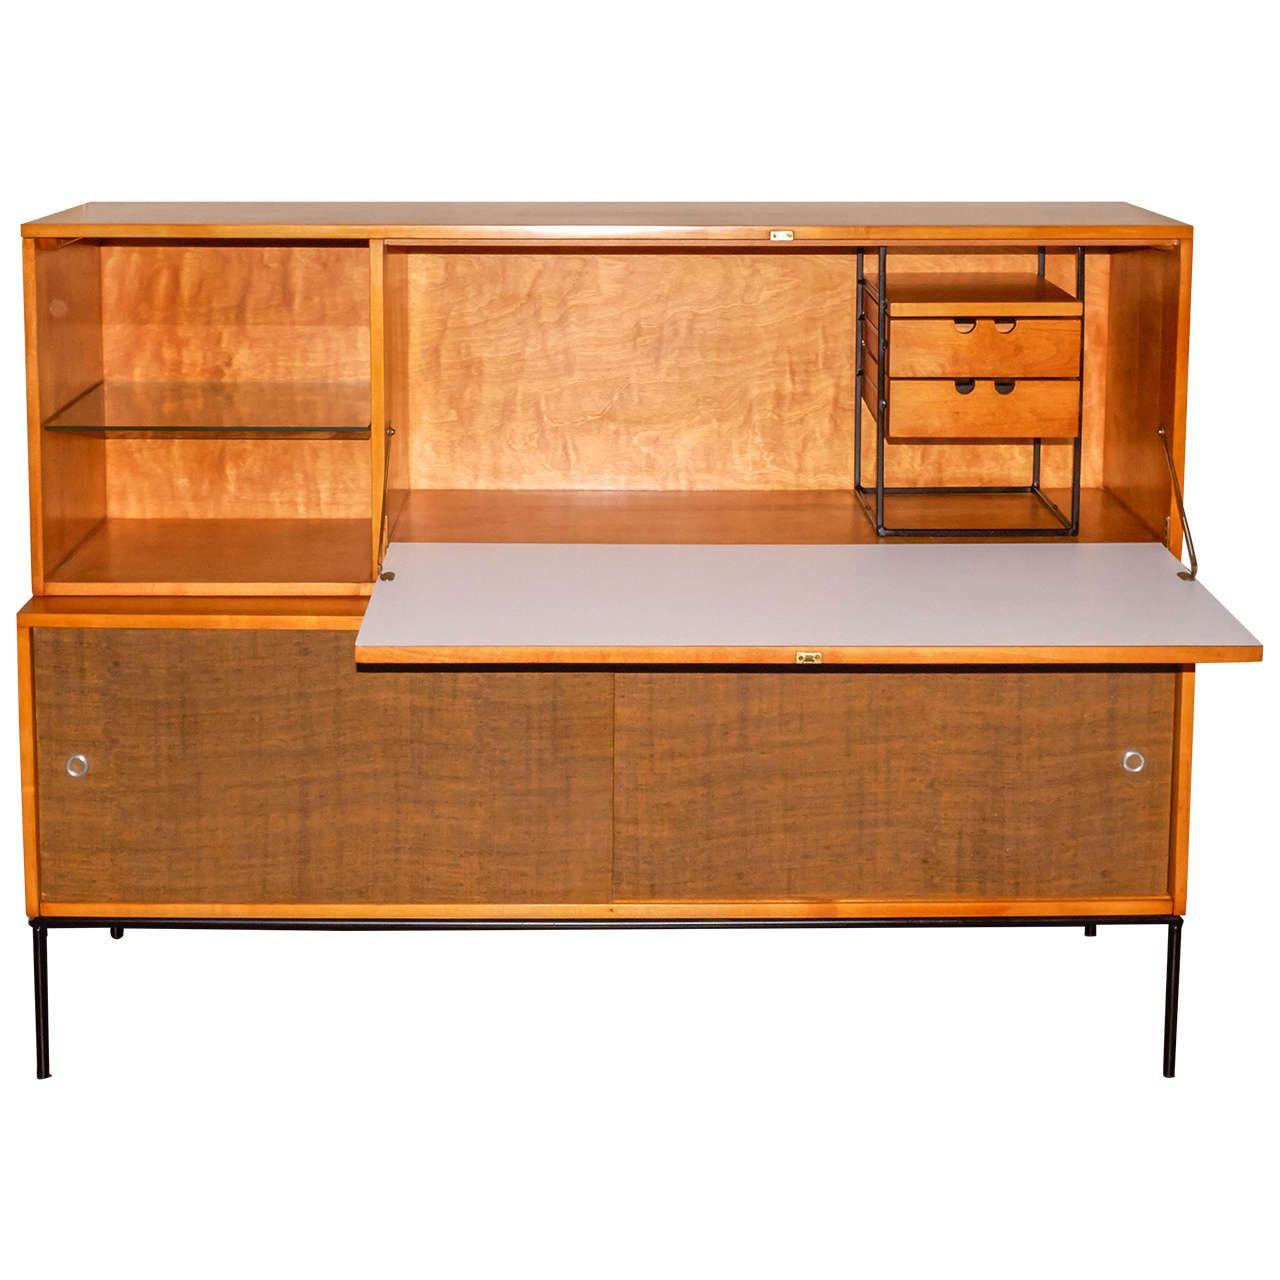 Paul McCobb Cabinet and Desk Unit | From a unique collection of antique and modern secretaires at https://www.1stdibs.com/furniture/storage-case-pieces/secretaires/